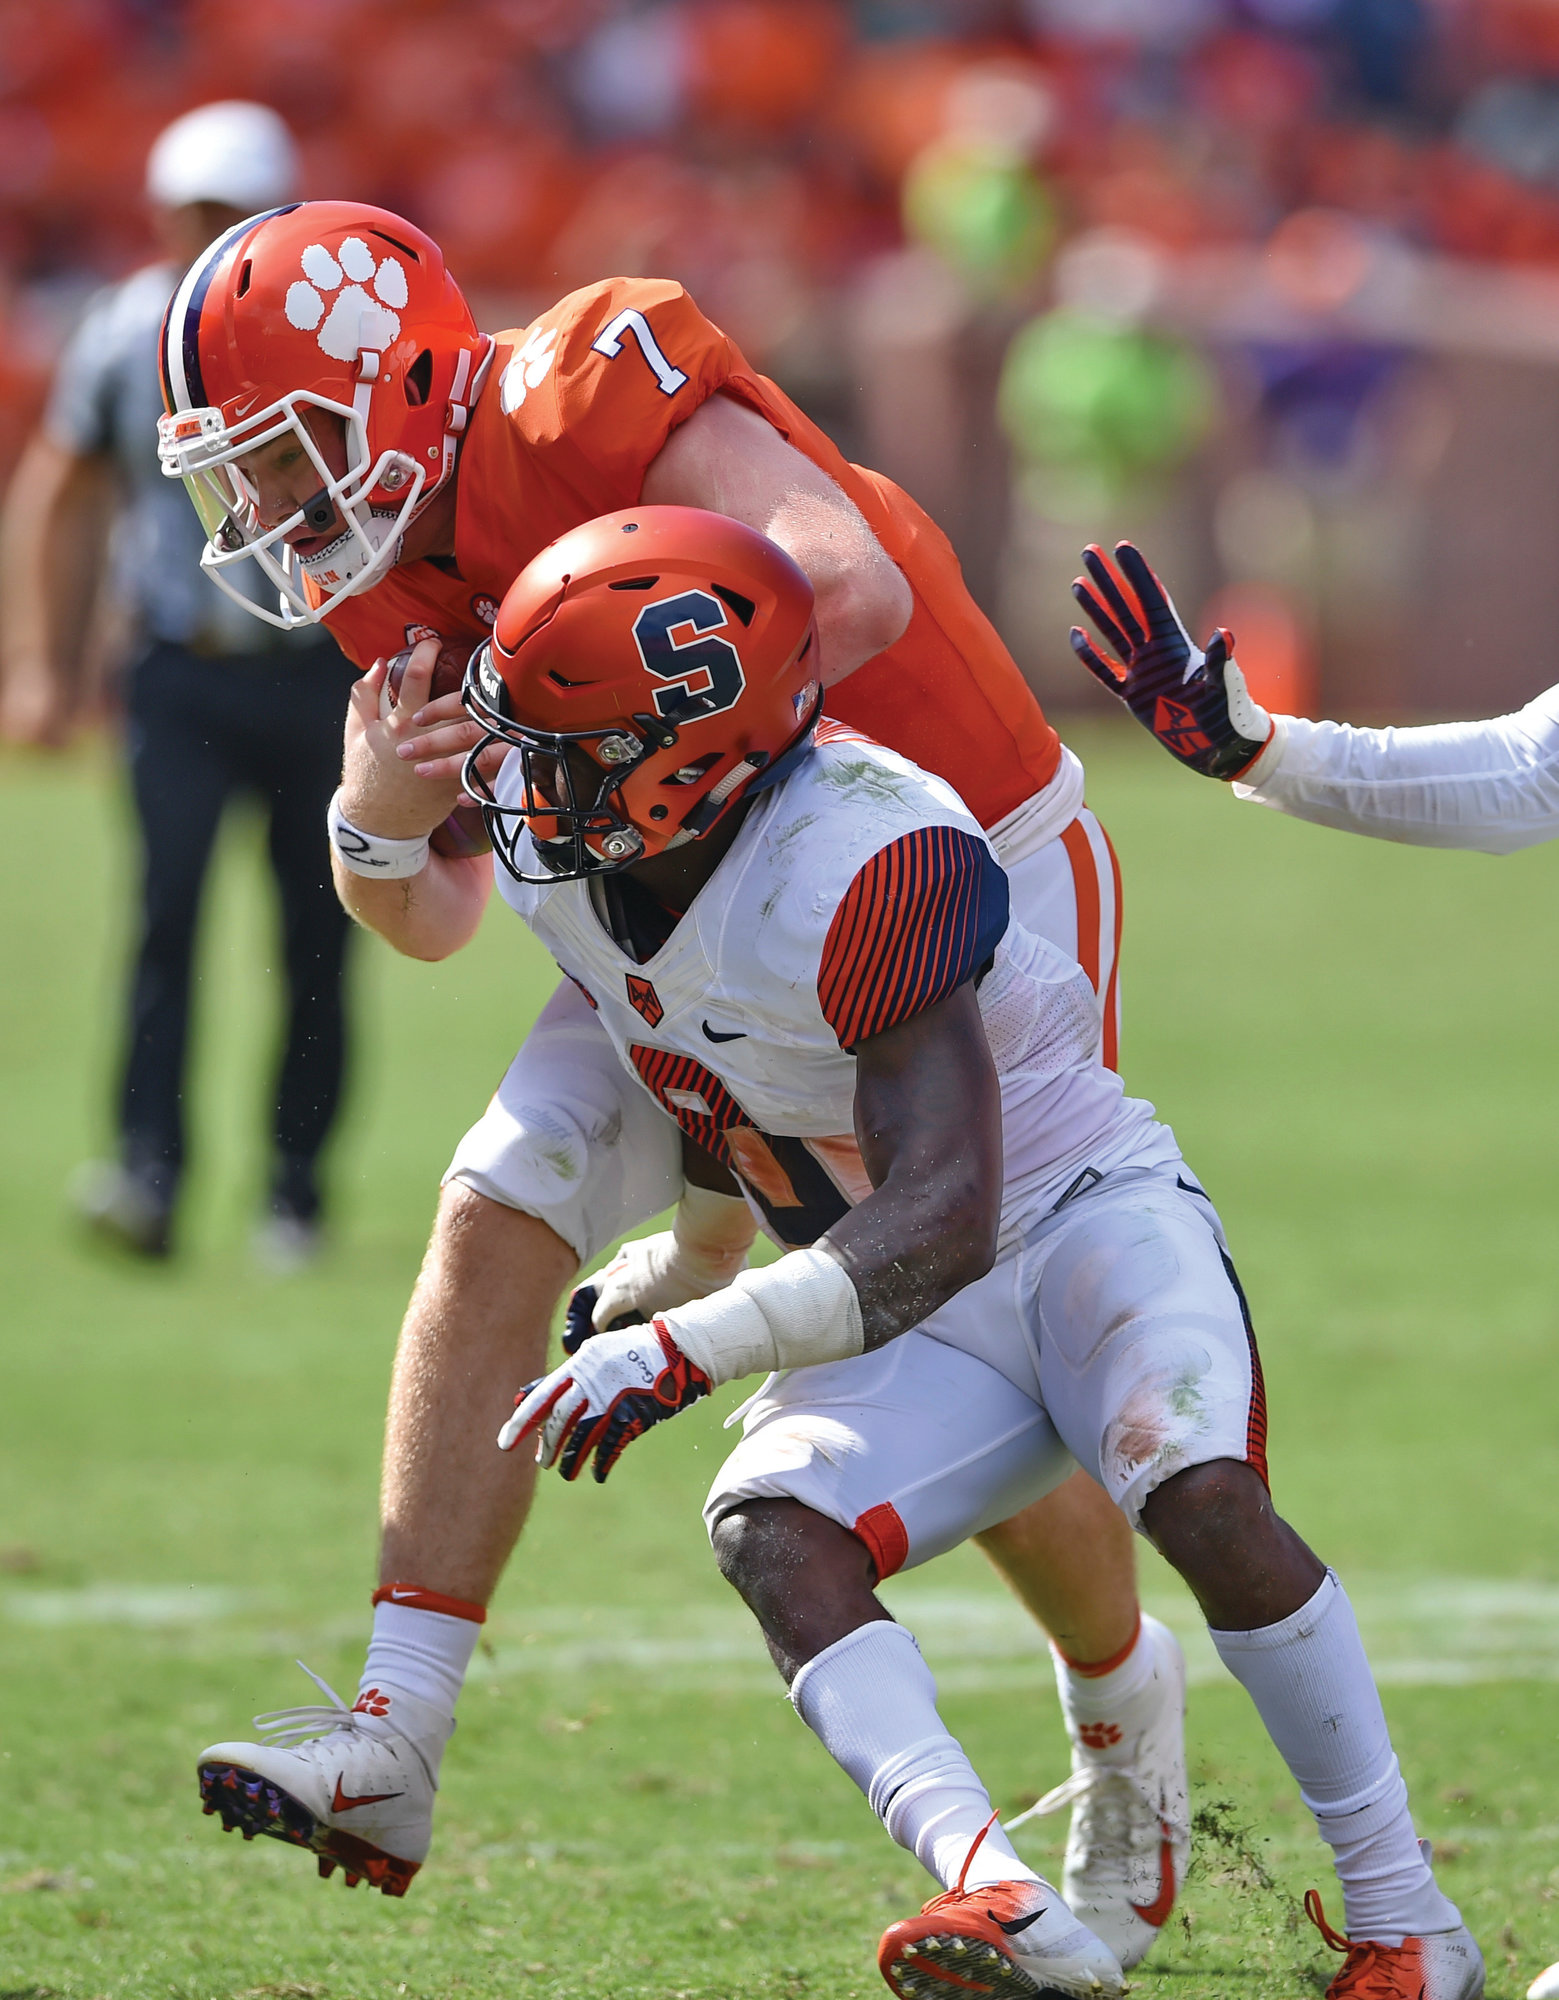 THE ASSOCIATED PRESSClemson quarterback Chase Brice (7) plows into Syracuse's Antwan Cordy after making a crucial first down on the winning drive in the Tigers' 27-23 triumph on Saturday in Clemson. The Tigers still aren't sure if starting quarterback Trevor Lawrence, injured on Saturday, will be available to play this Saturday against Wake Forest.